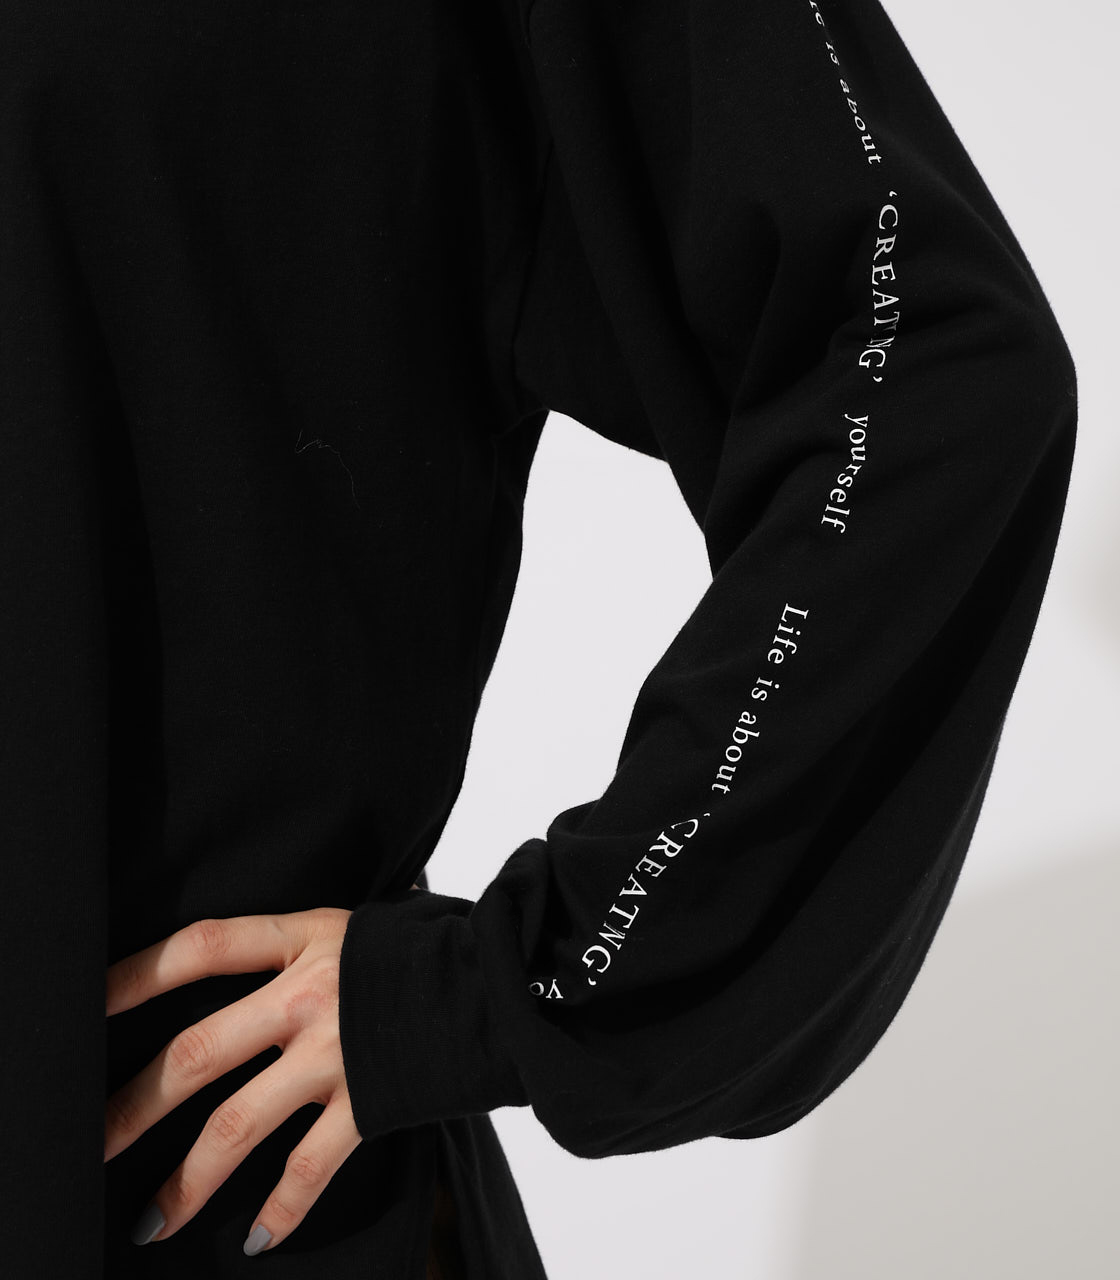 LONG SLEEVE LOOSE TOPS/ロングスリーブルーズトップス 詳細画像 BLK 8